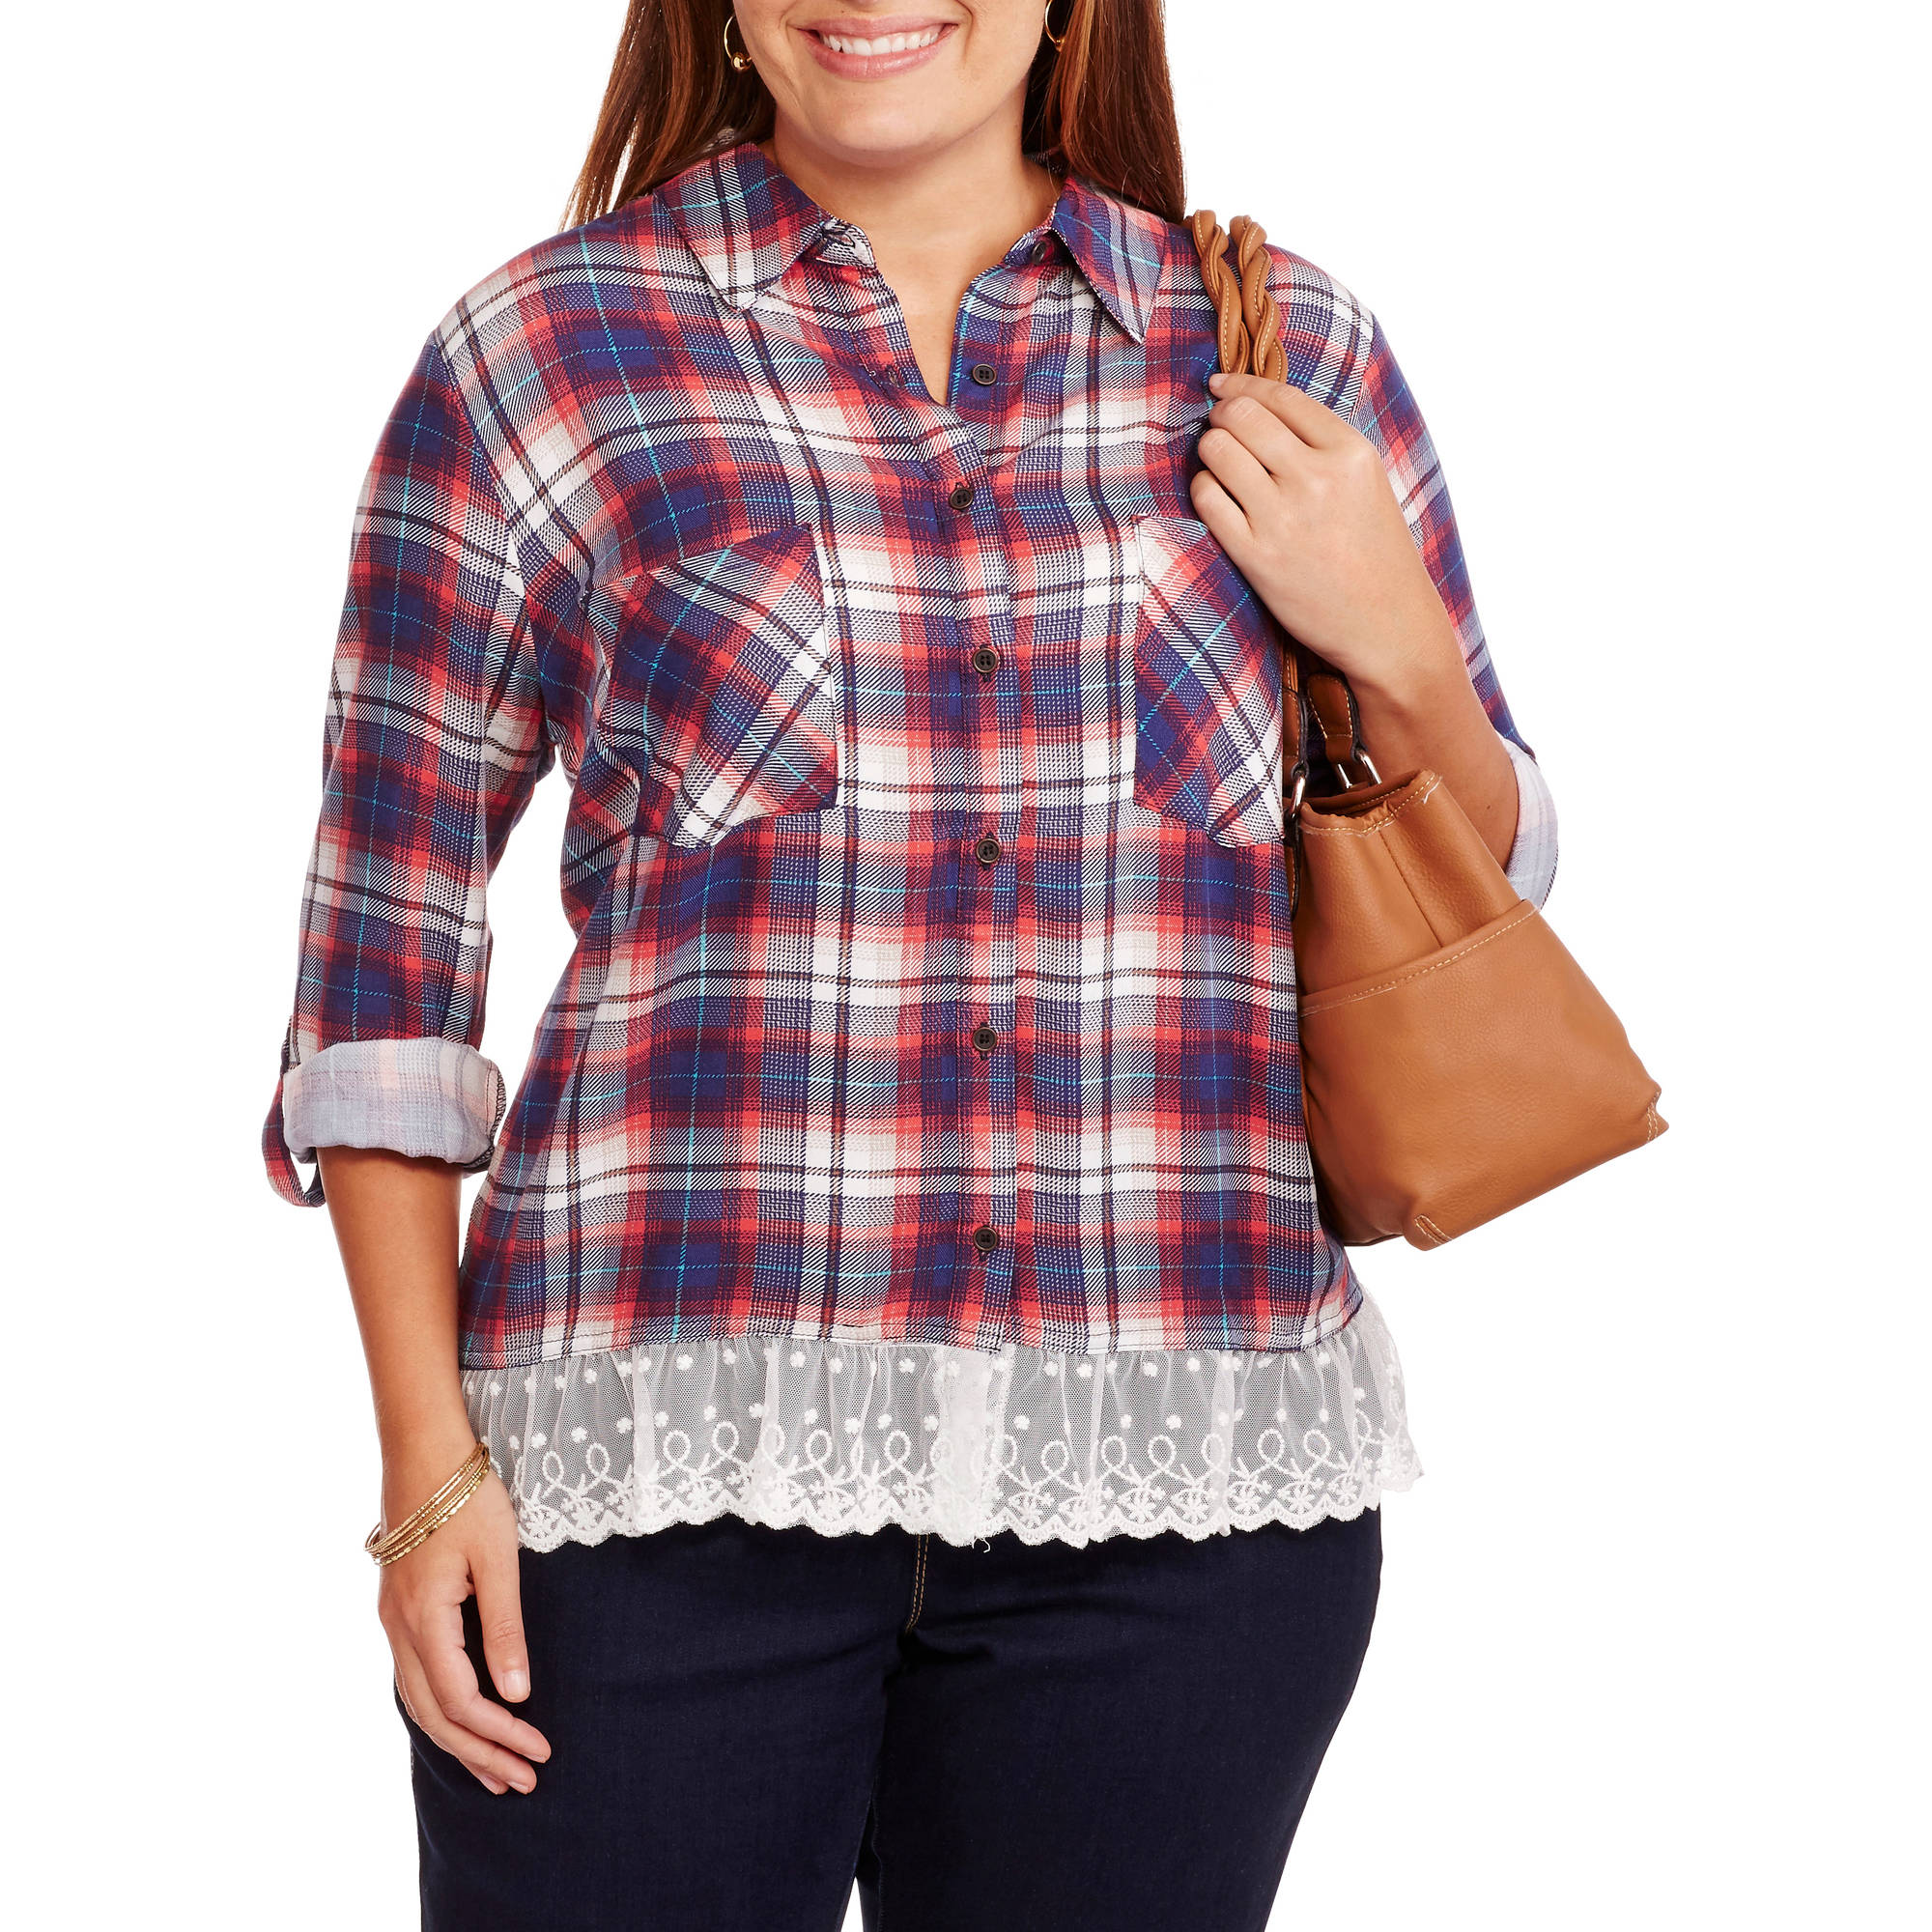 Image of Absolutely Famous Women's Plus 3/4 Tab Roll Sleeve Plaid Shirt with Lace Trim Hem